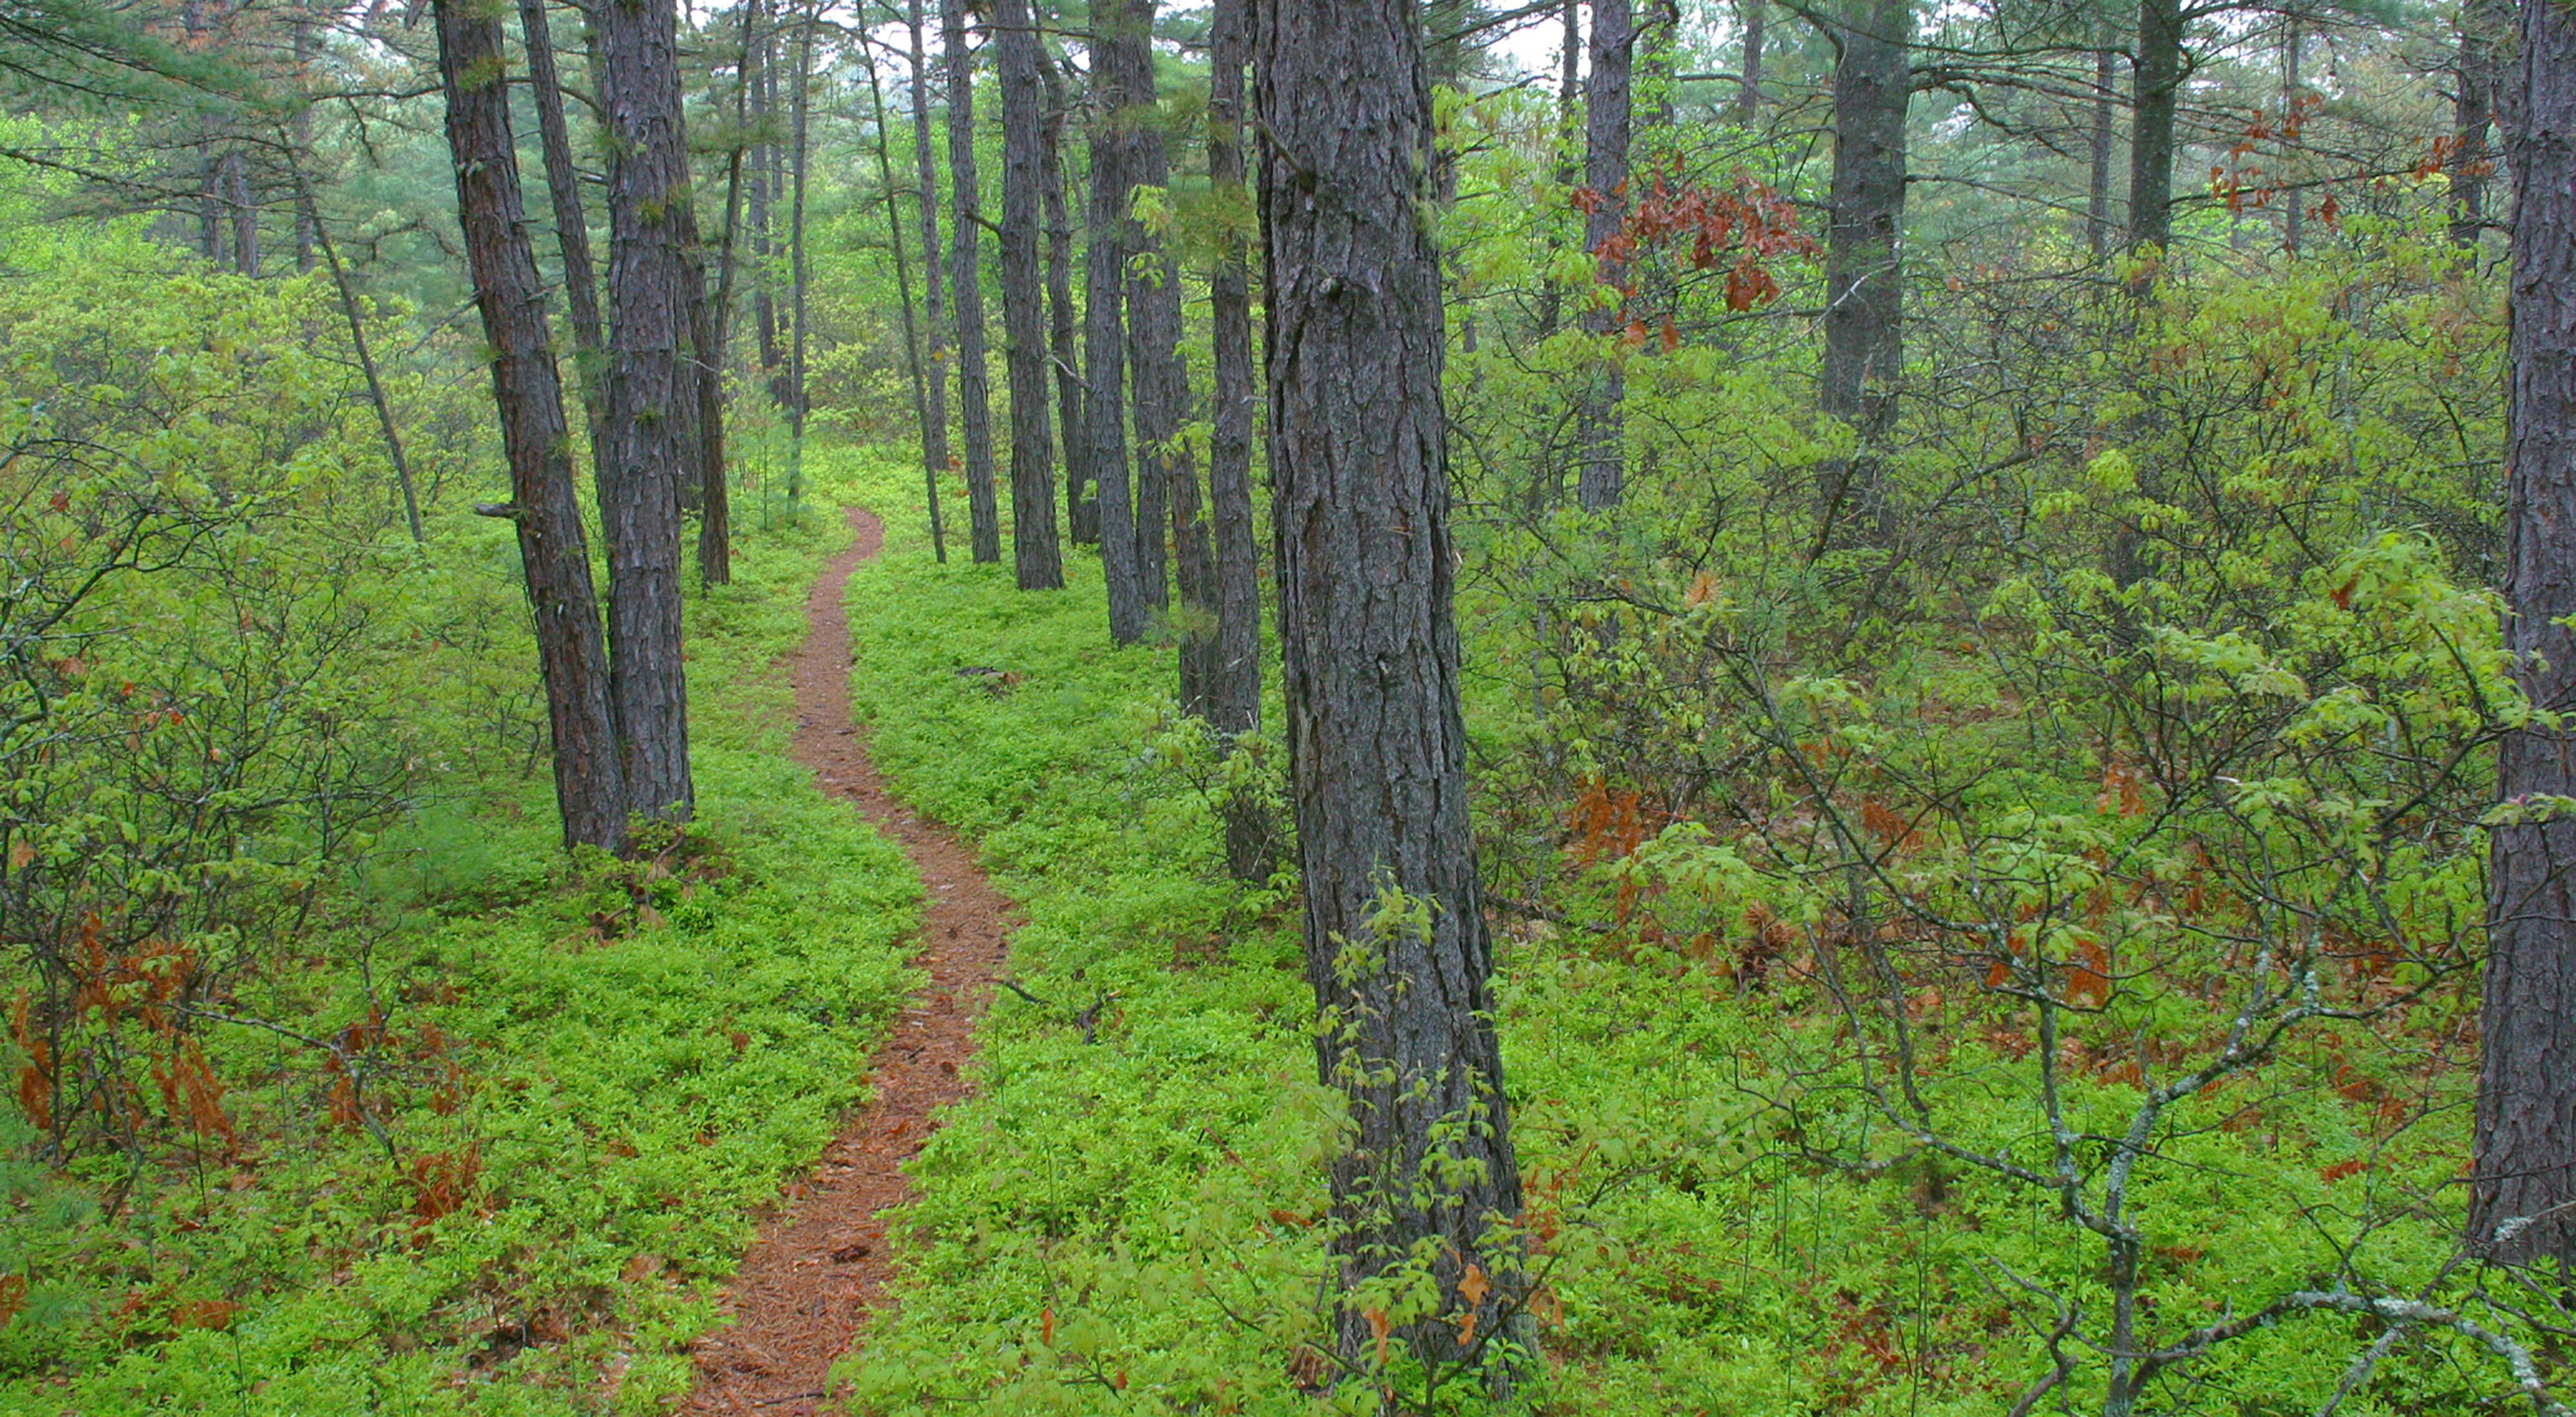 A trail winds through the Ossipee Pine Barrens, a globally rare, fire-dependent forest type.